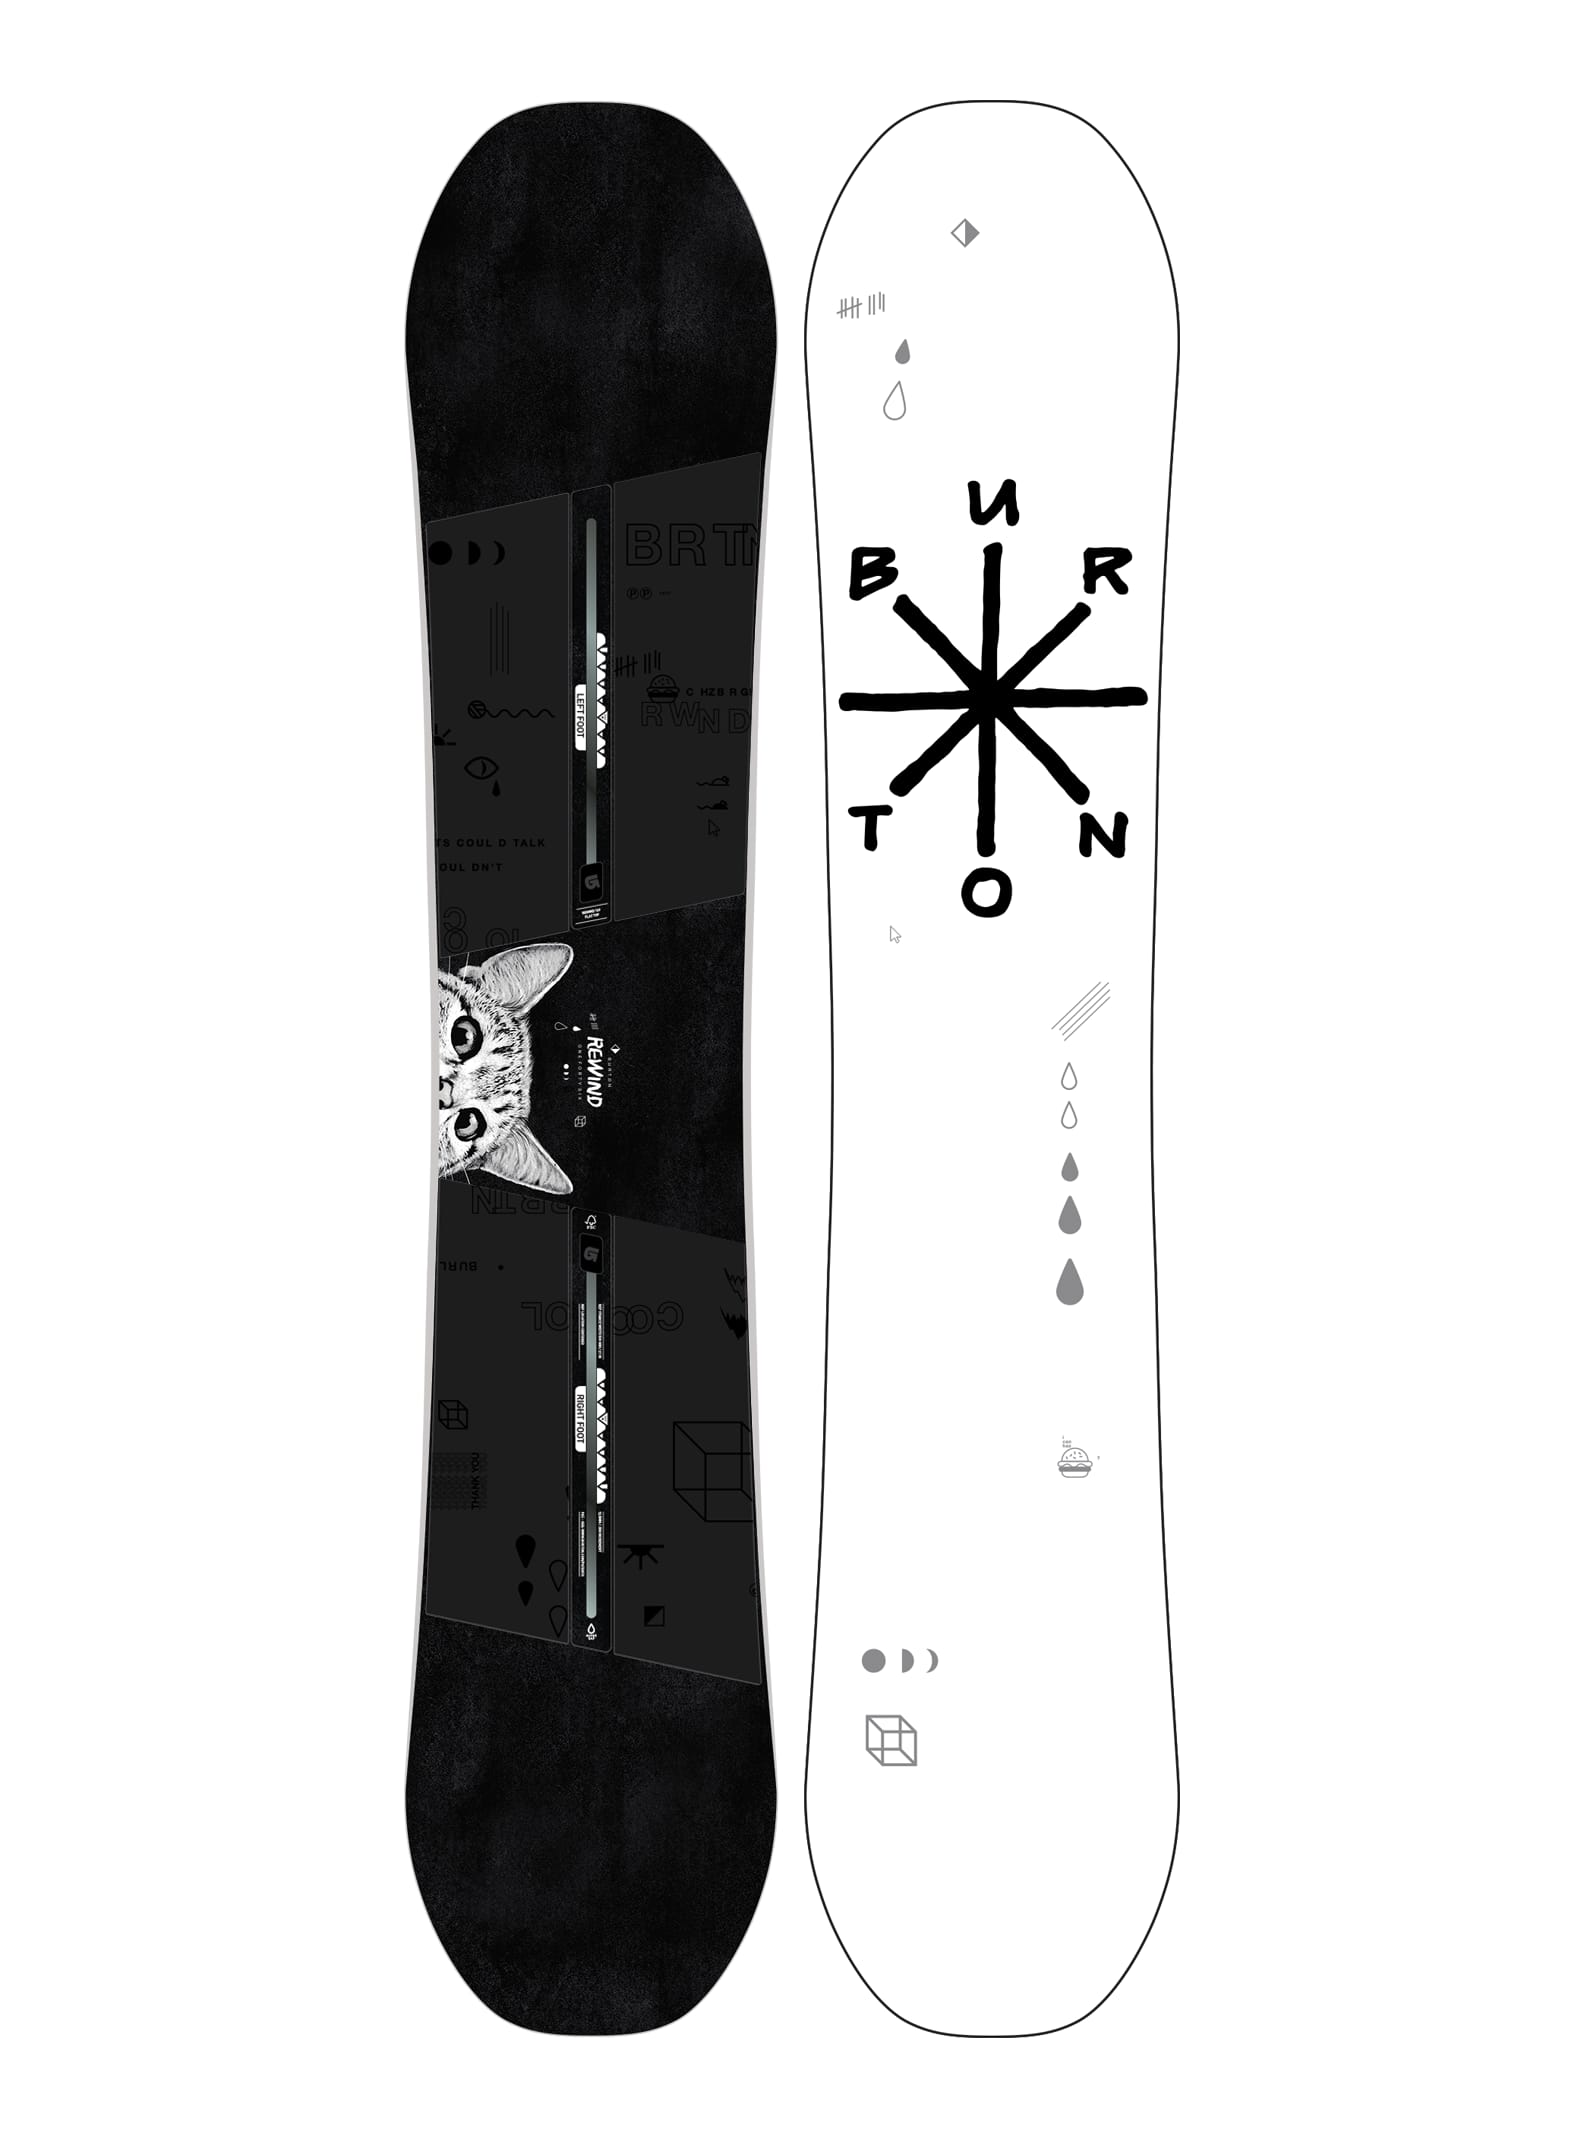 What to look for when buying a Black Fire snowboard